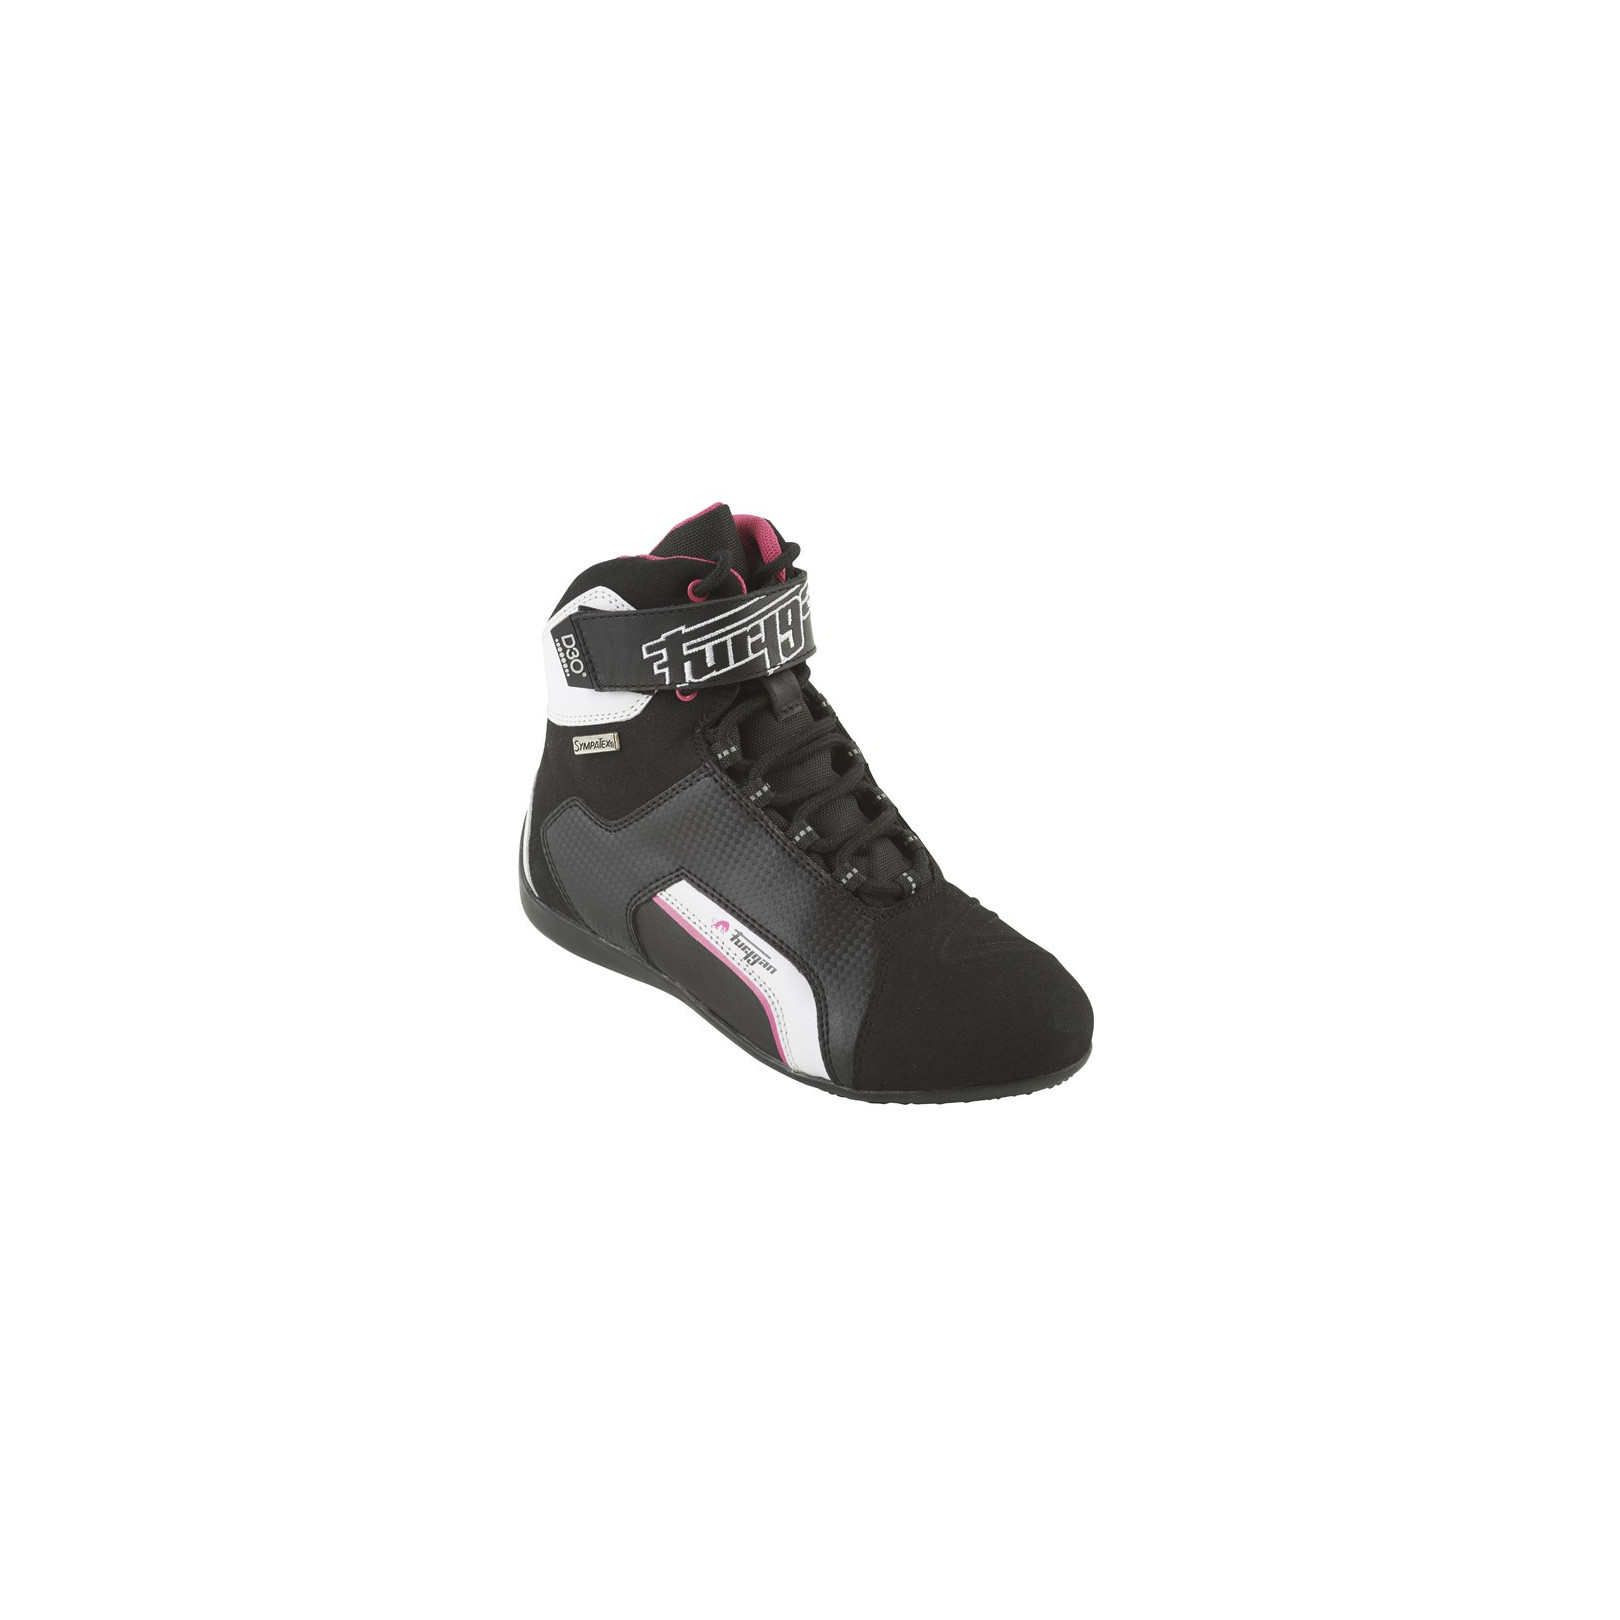 Baskets Furygan Lady Jet Sympatex D3O Noir-Rose